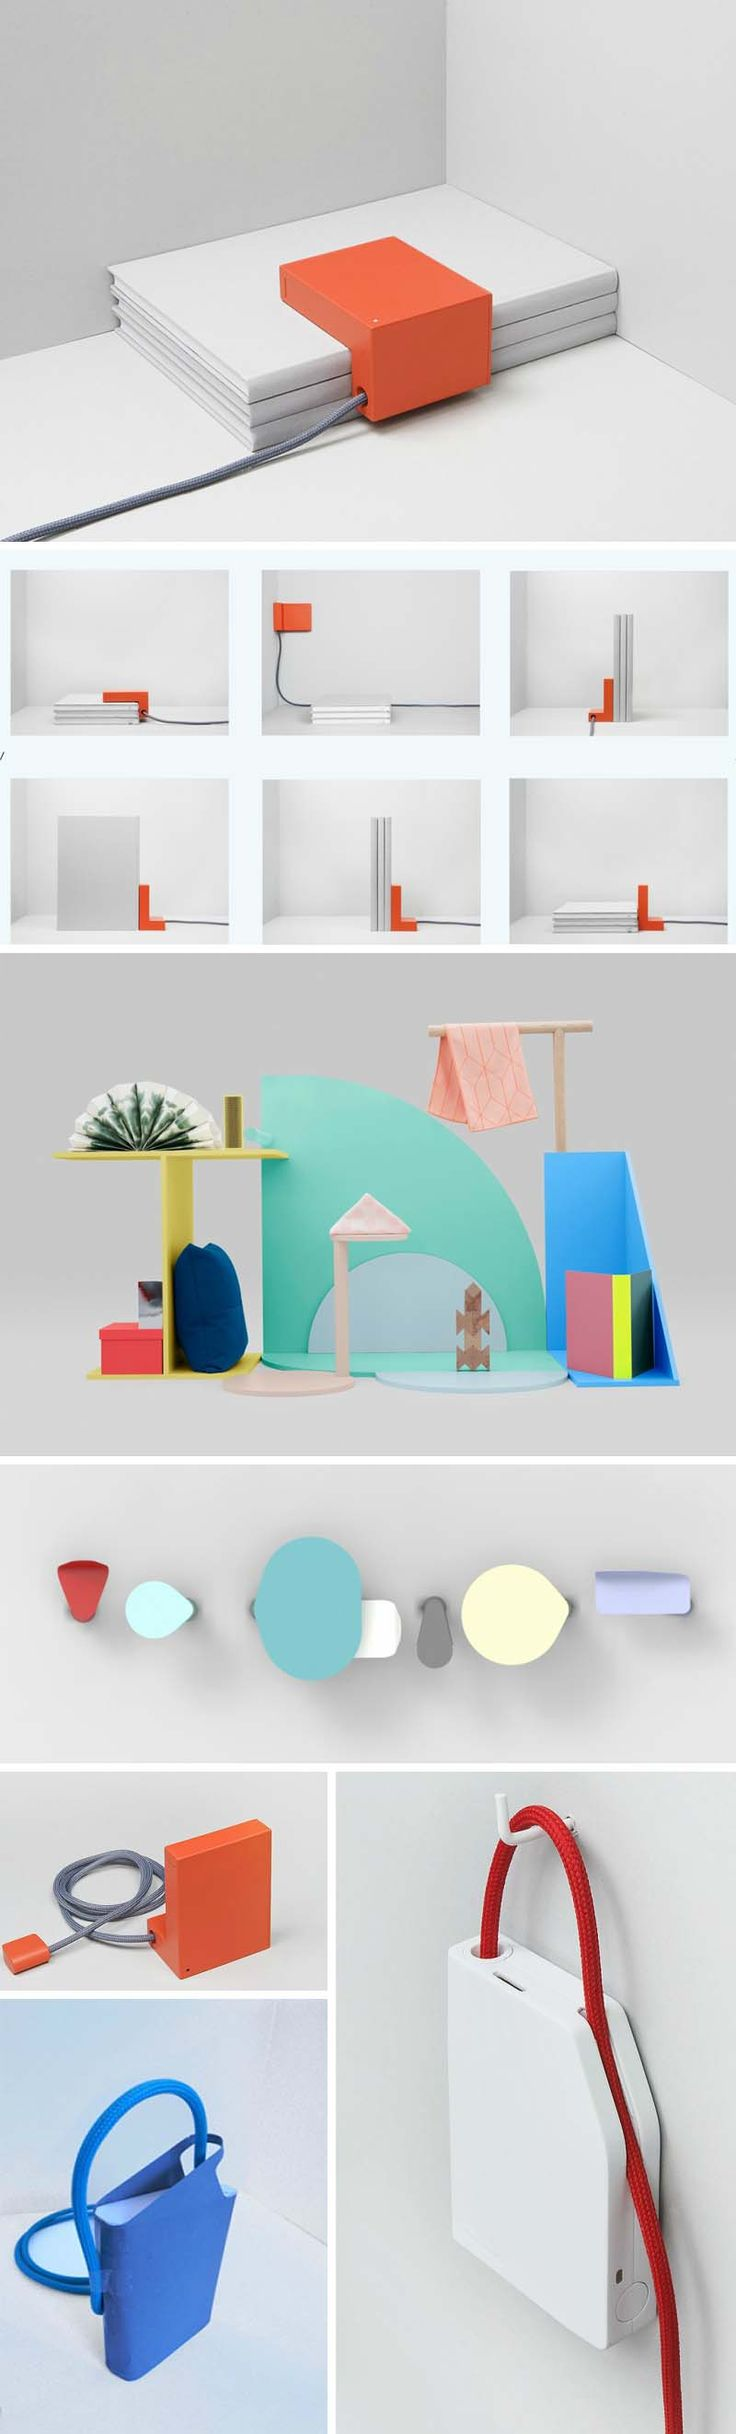 Beautiful Industrial Design from Office for Design in Stockholm, Shane Schneck, furniture design and product design, modem/router design, strike matches